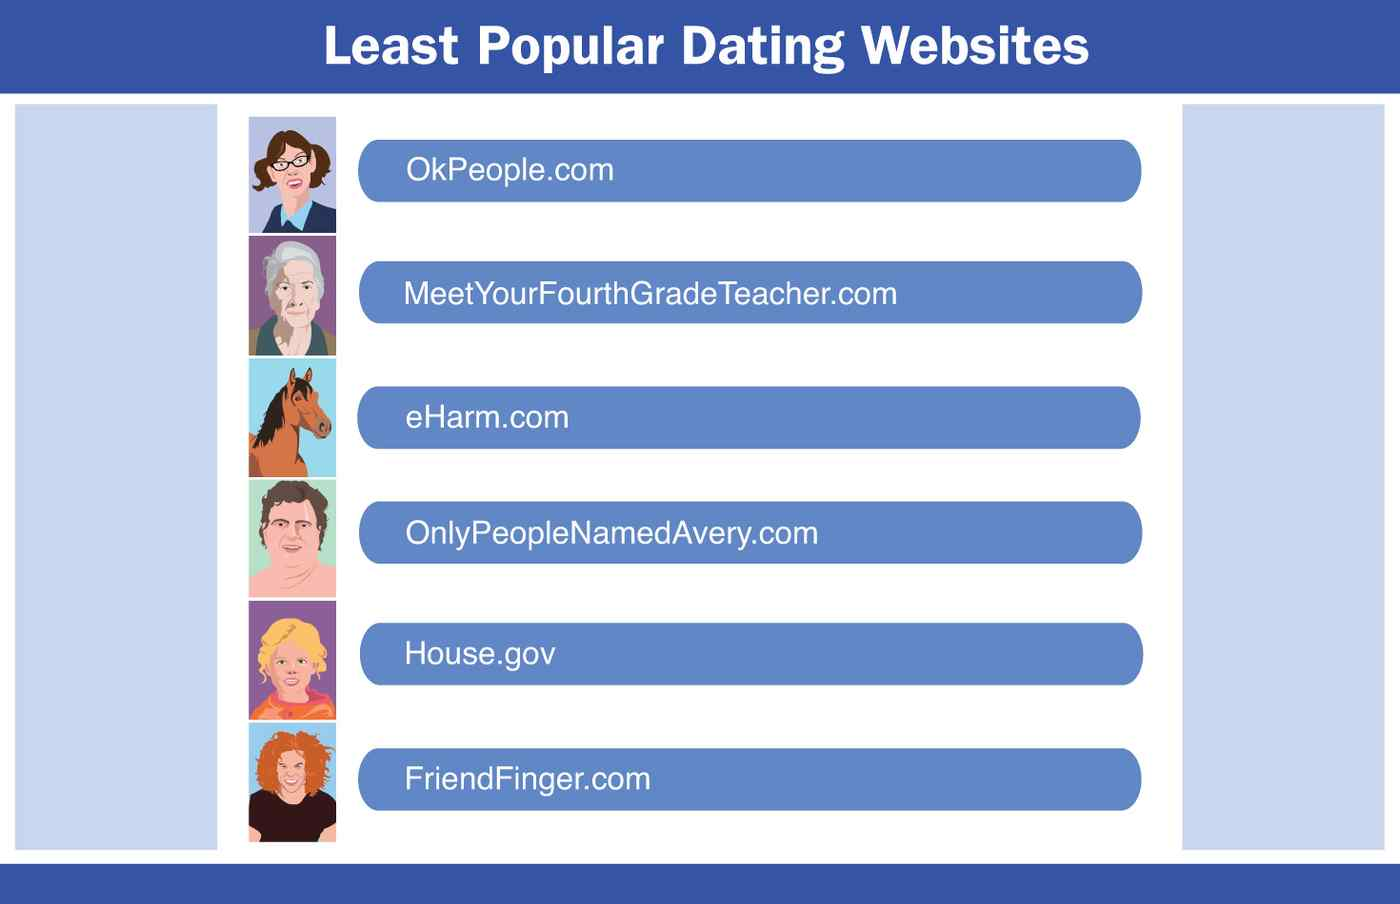 Why dating sites are a success